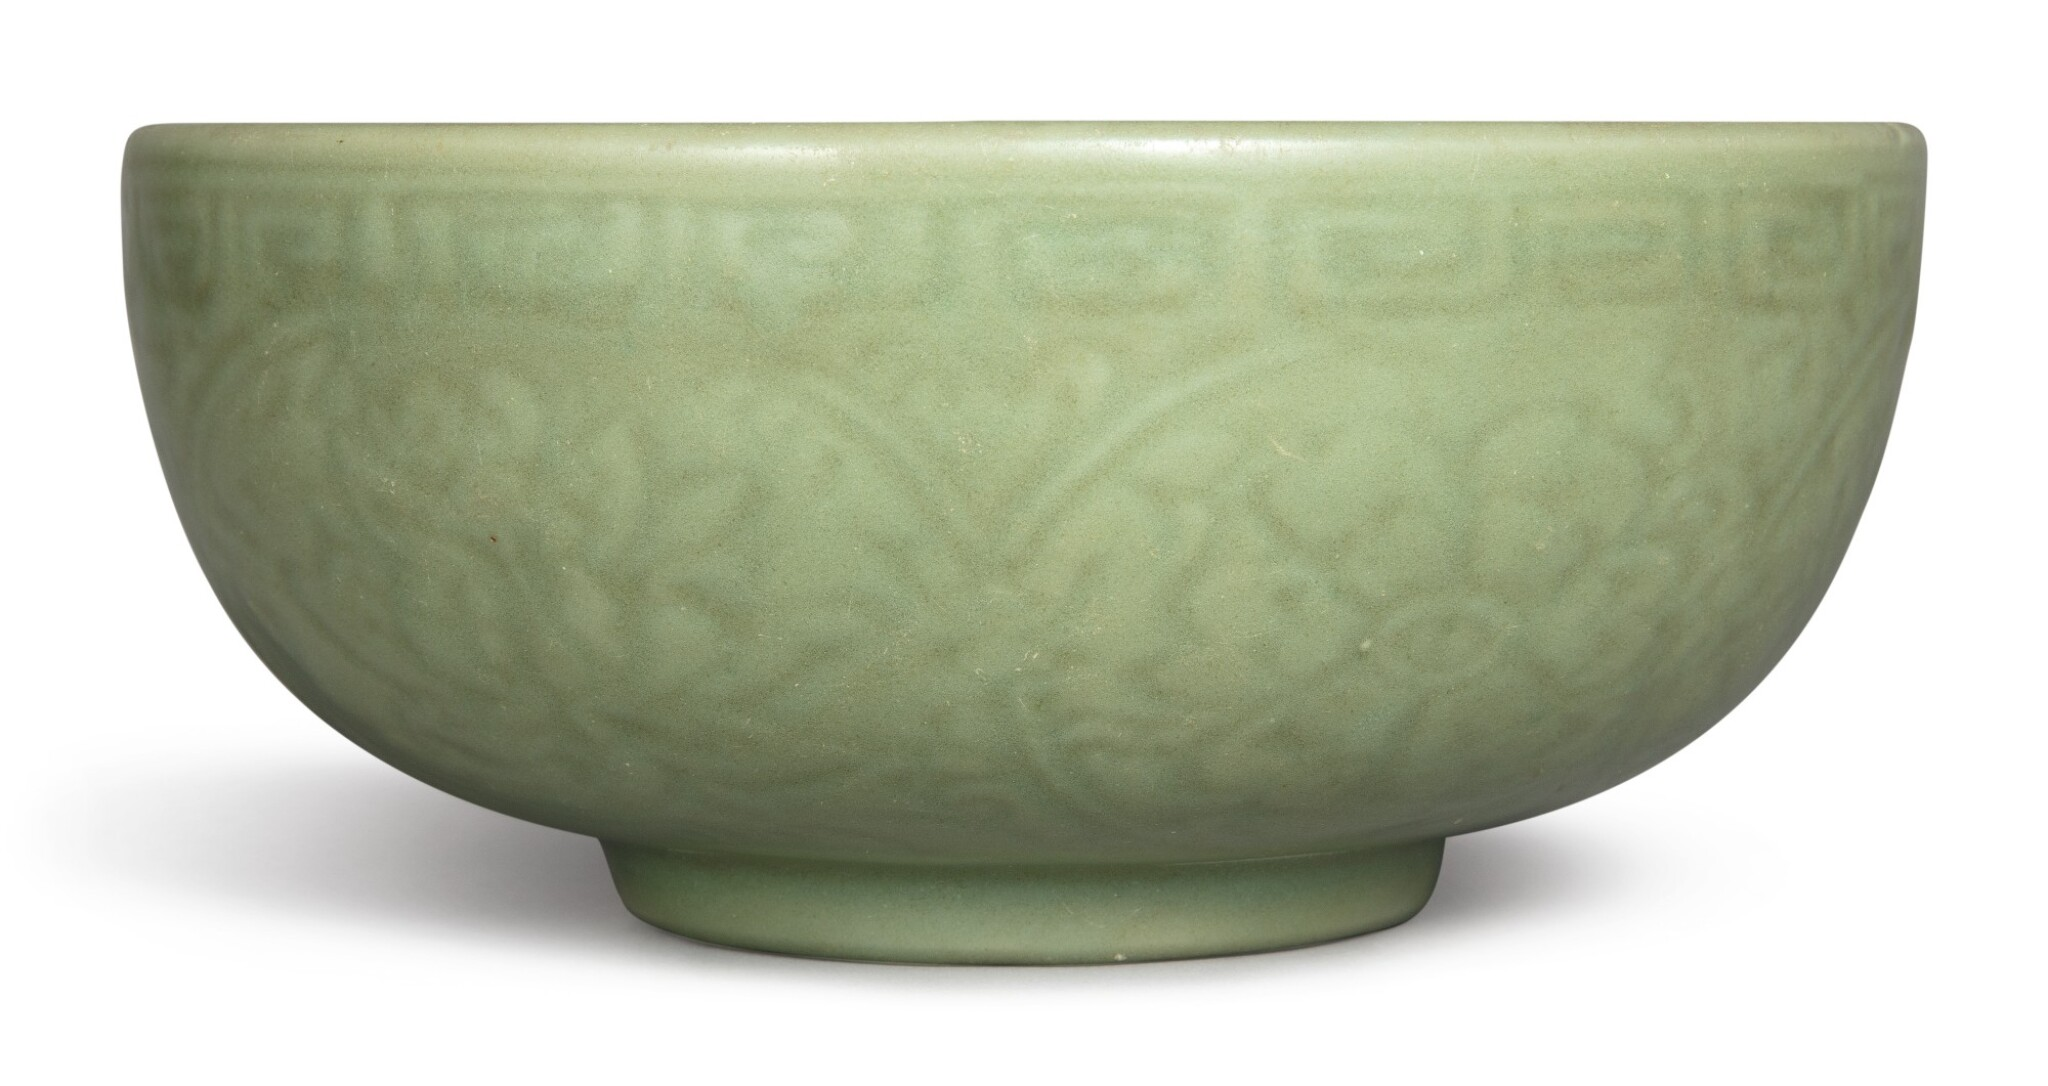 View 1 of Lot 1132. A CARVED 'LONGQUAN' CELADON-GLAZED 'LOTUS' BOWL, MING DYNASTY, 15TH CENTURY.